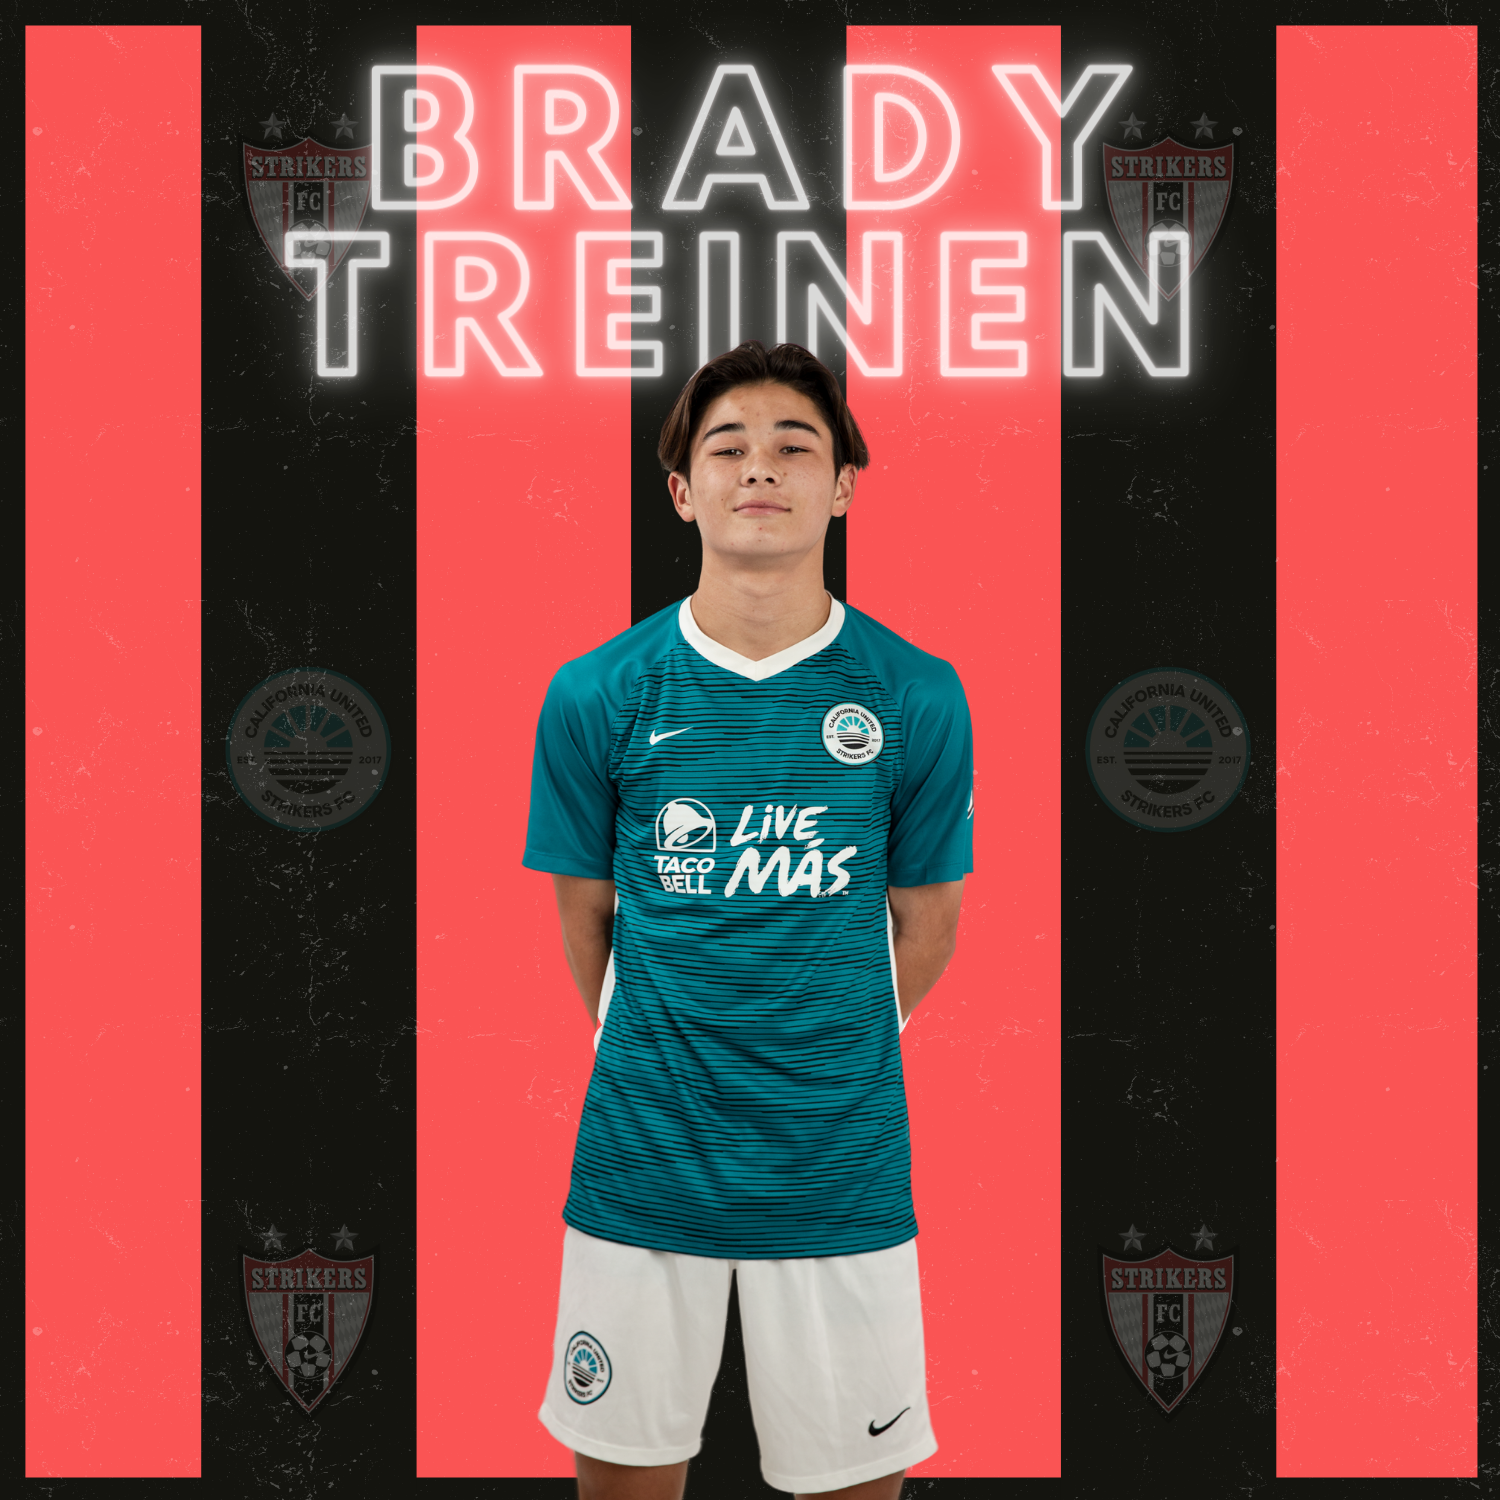 B2004 STRIKERS PLAYER BRADY TREINEN SIGNS PRO CONTRACT WITH CAL UNITED STRIKERS FC